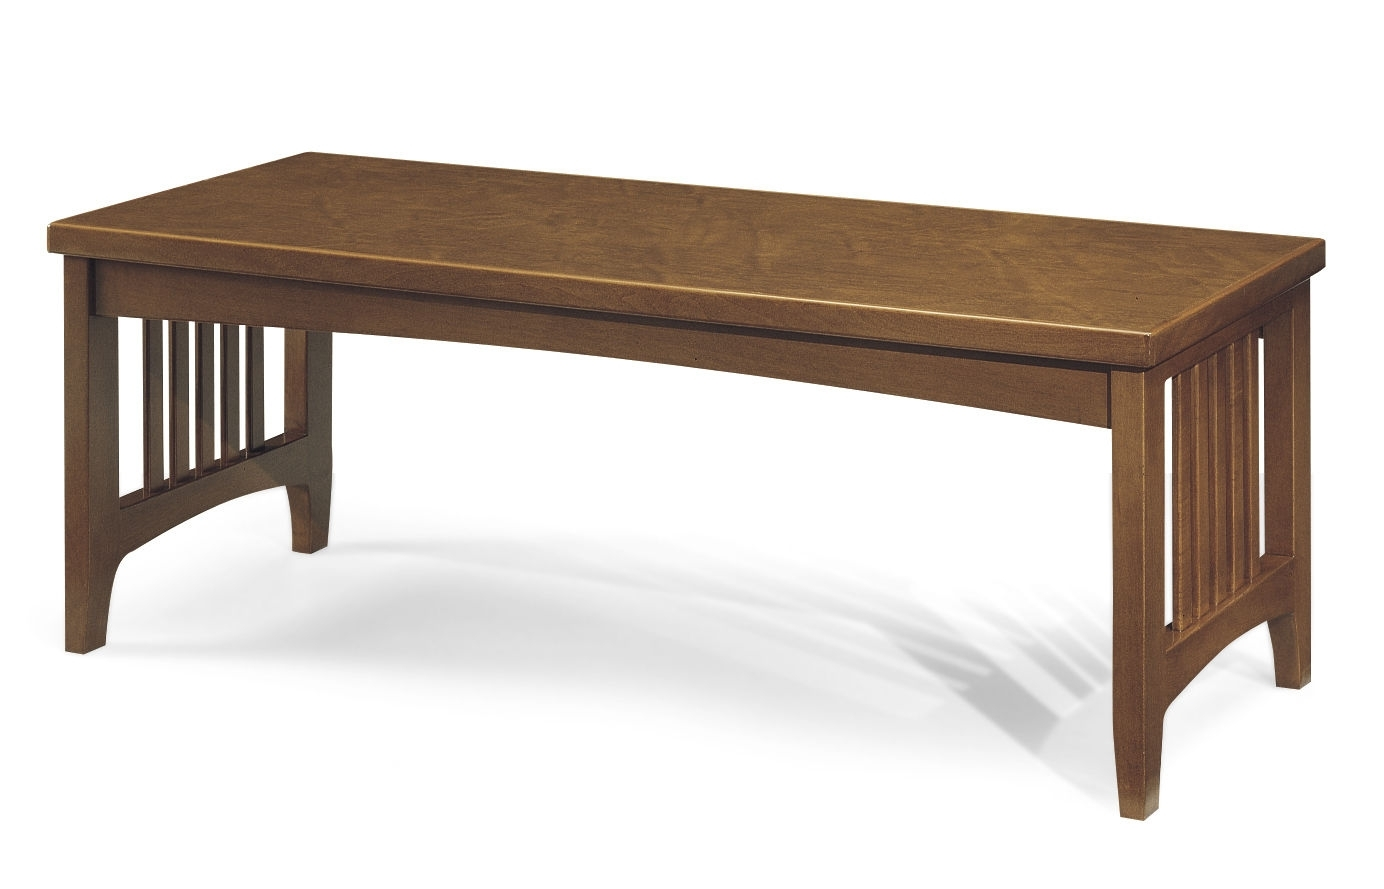 Traditional Coffee Table / Wooden / Rectangular - Hadleigh - Nemschoff throughout Traditional Coffee Tables (Image 23 of 30)